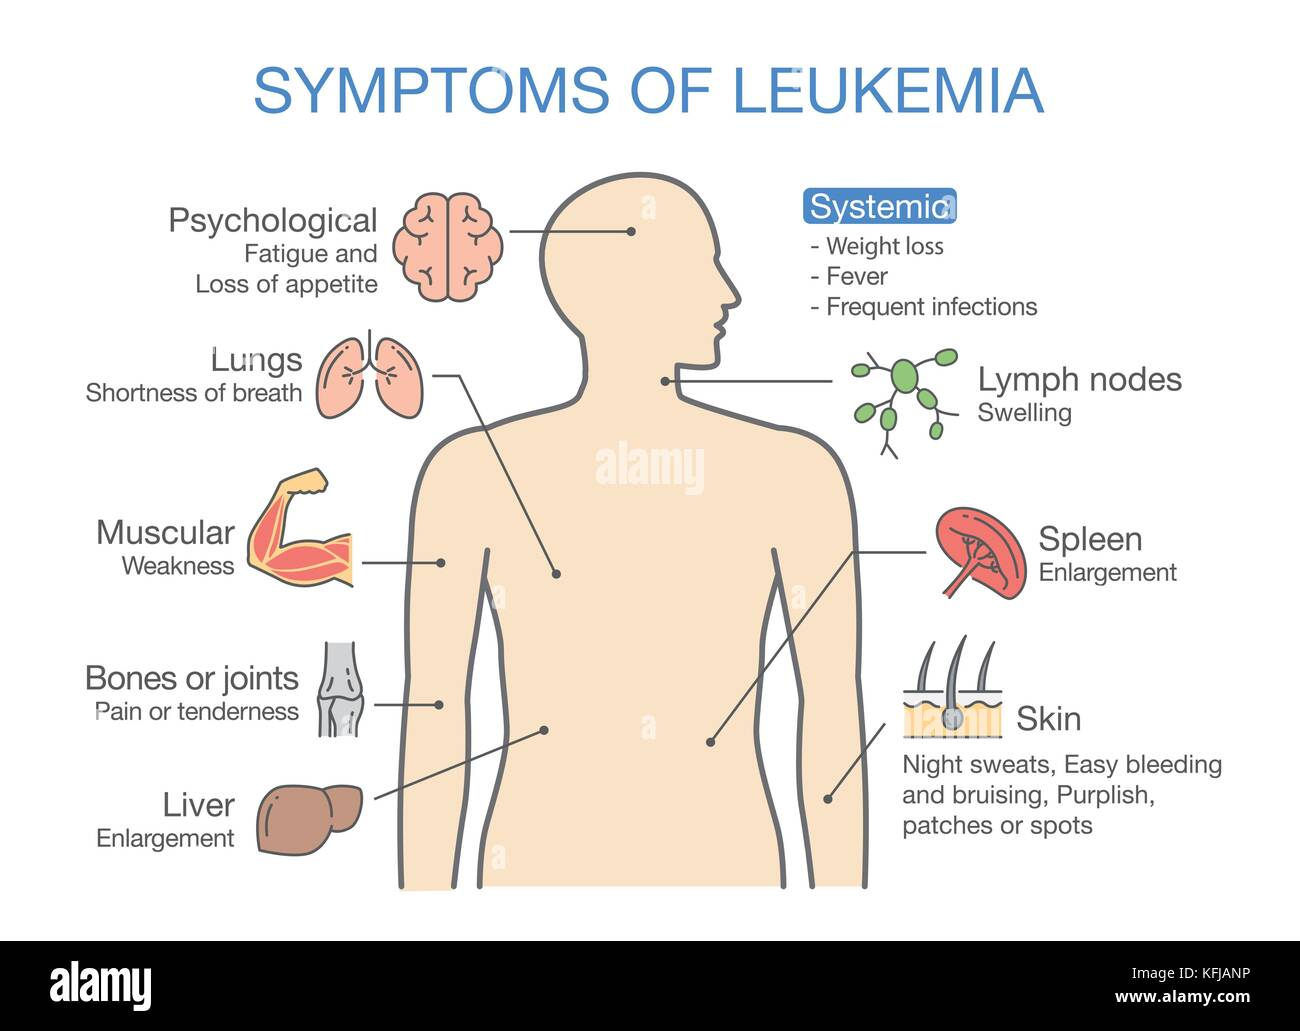 Common symptoms and signs of Leukemia. - Stock Image